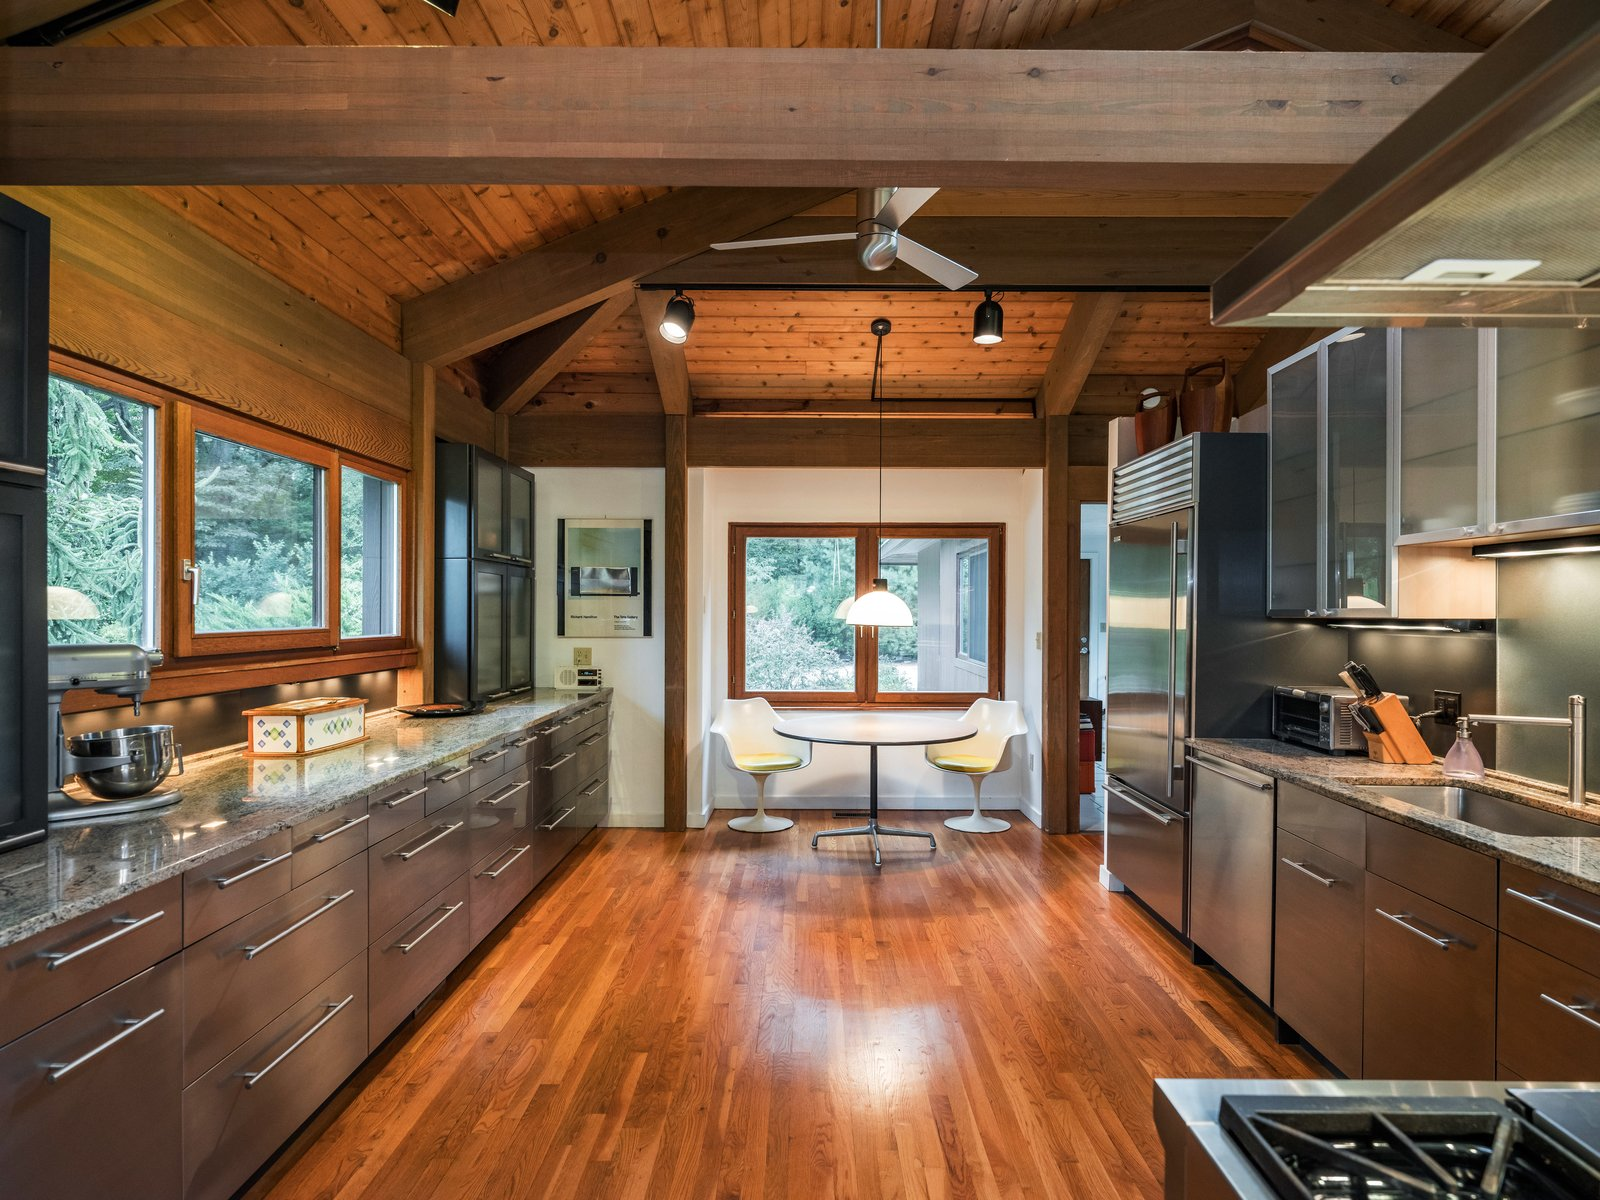 Post-and-beam home kitchen